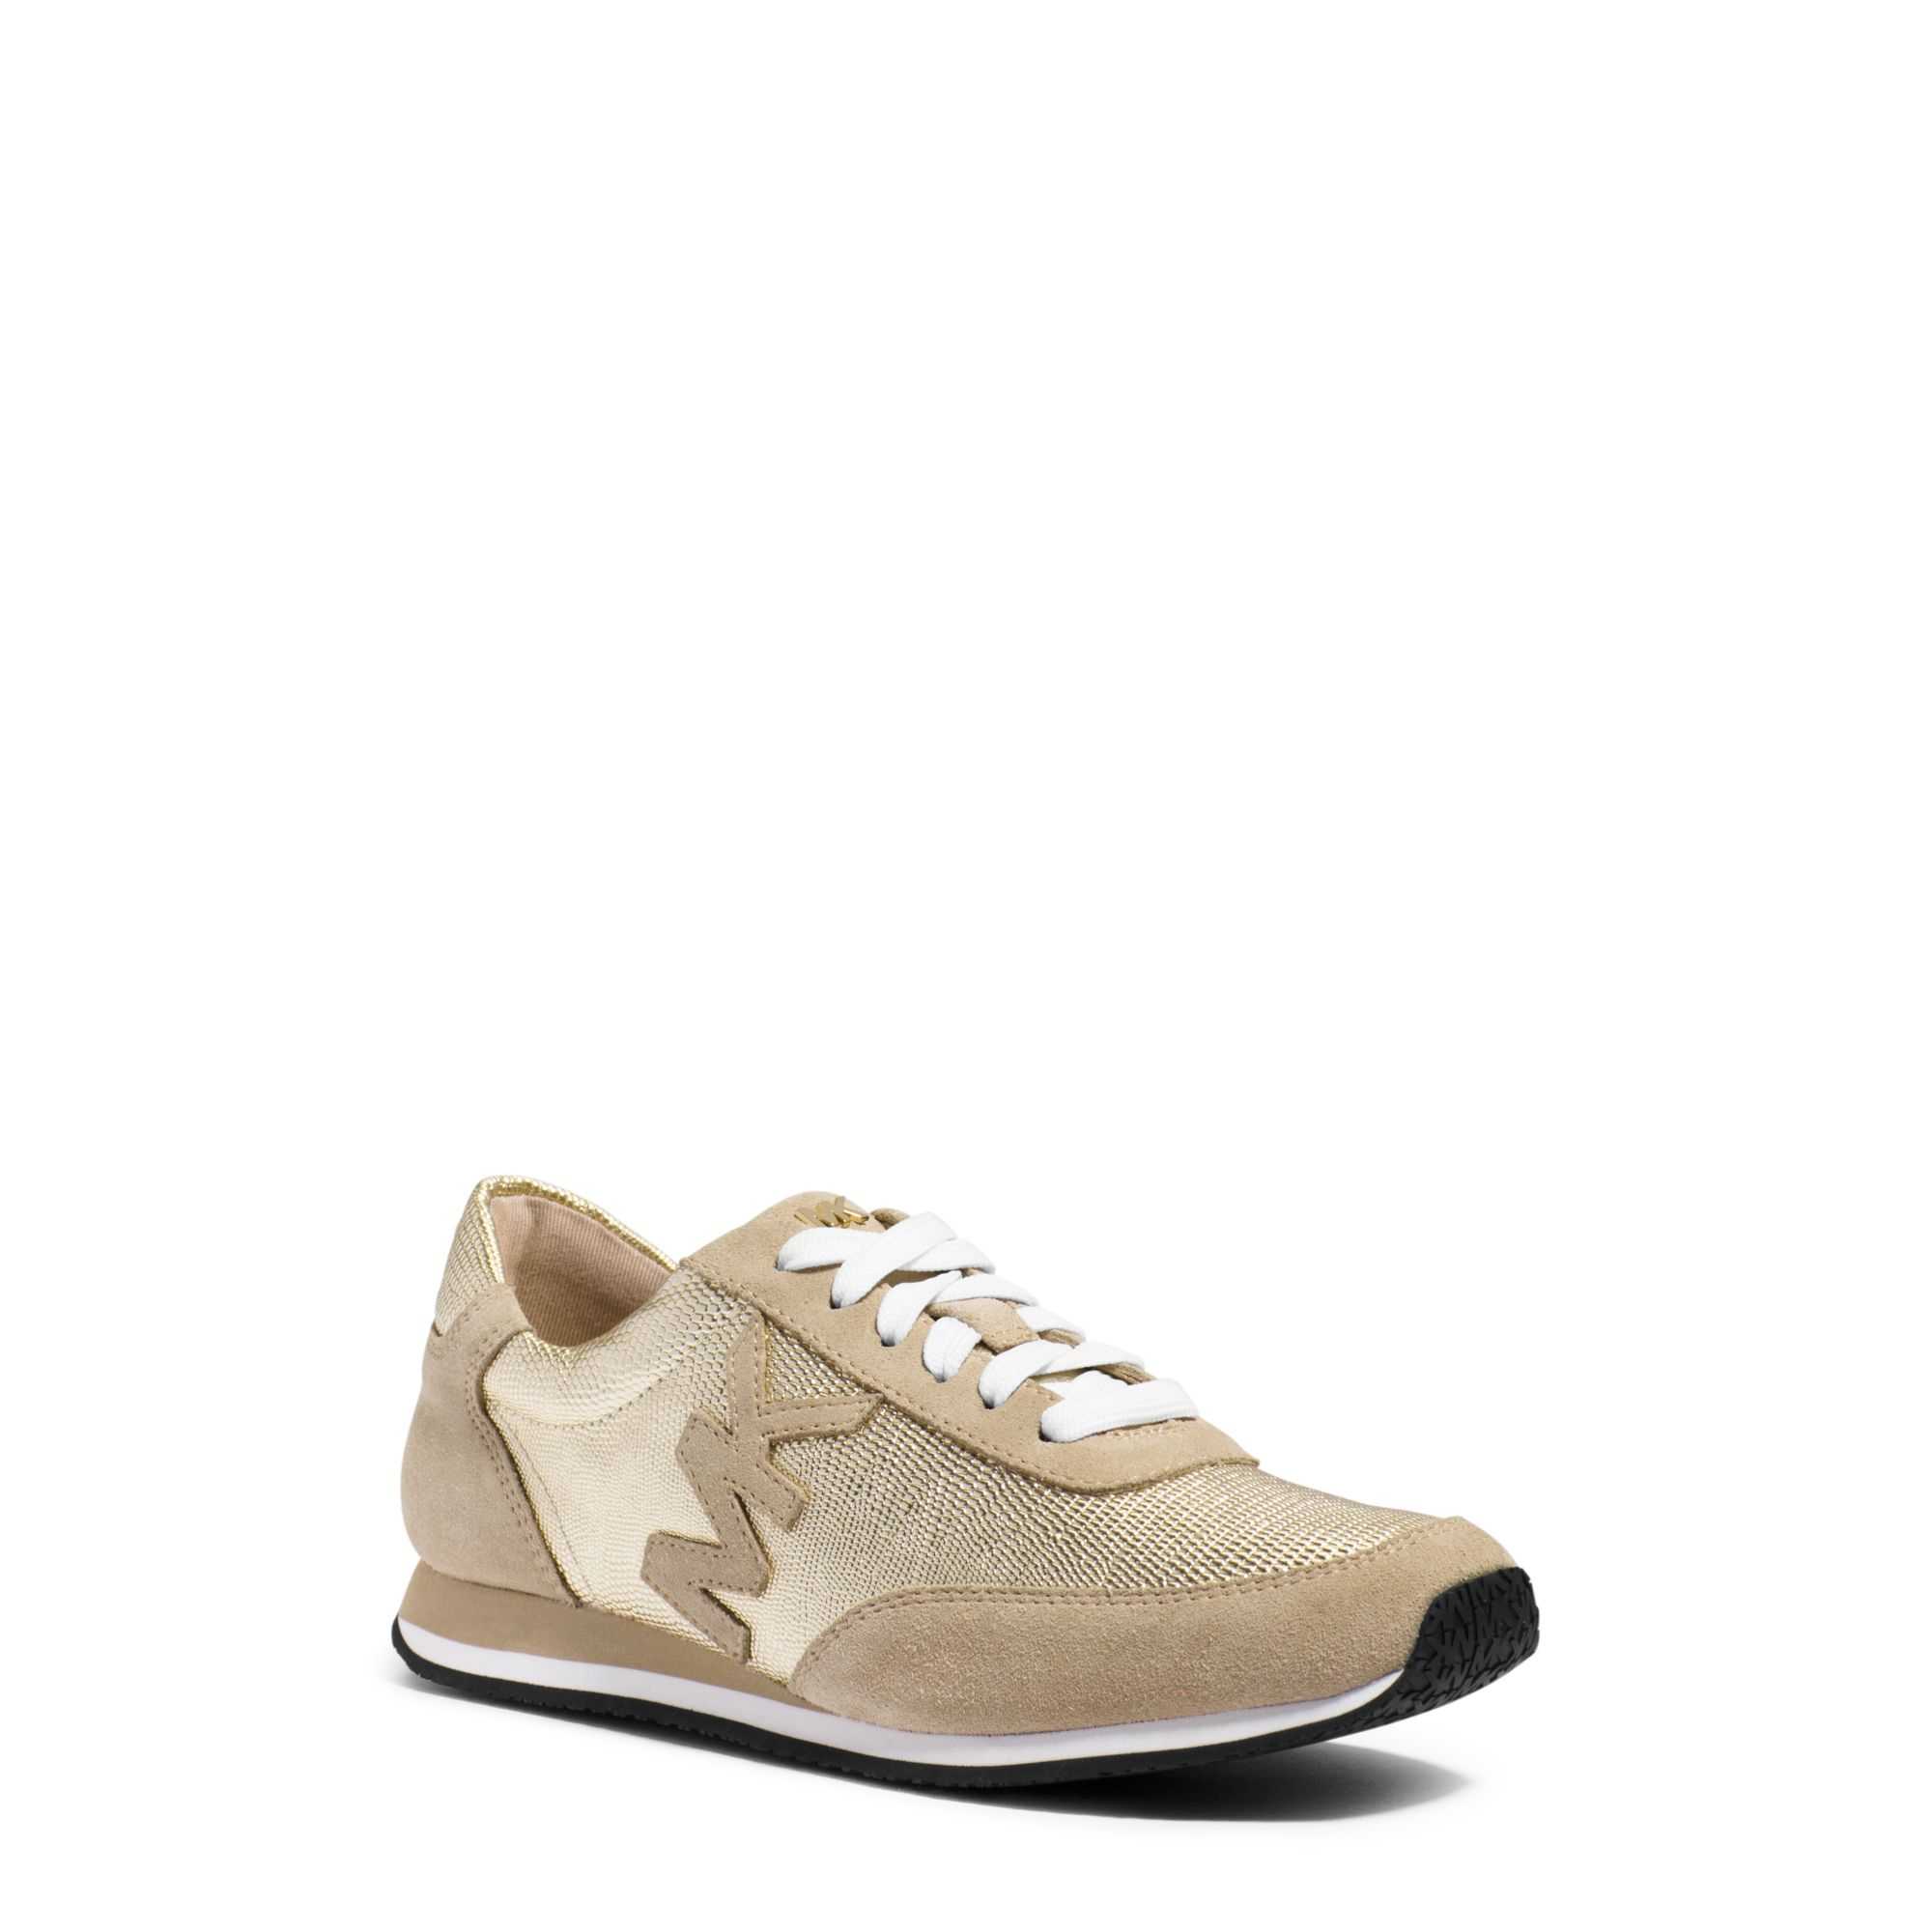 b6714e697d78 Lyst - Michael Kors Stanton Leather And Suede Sneaker in Metallic